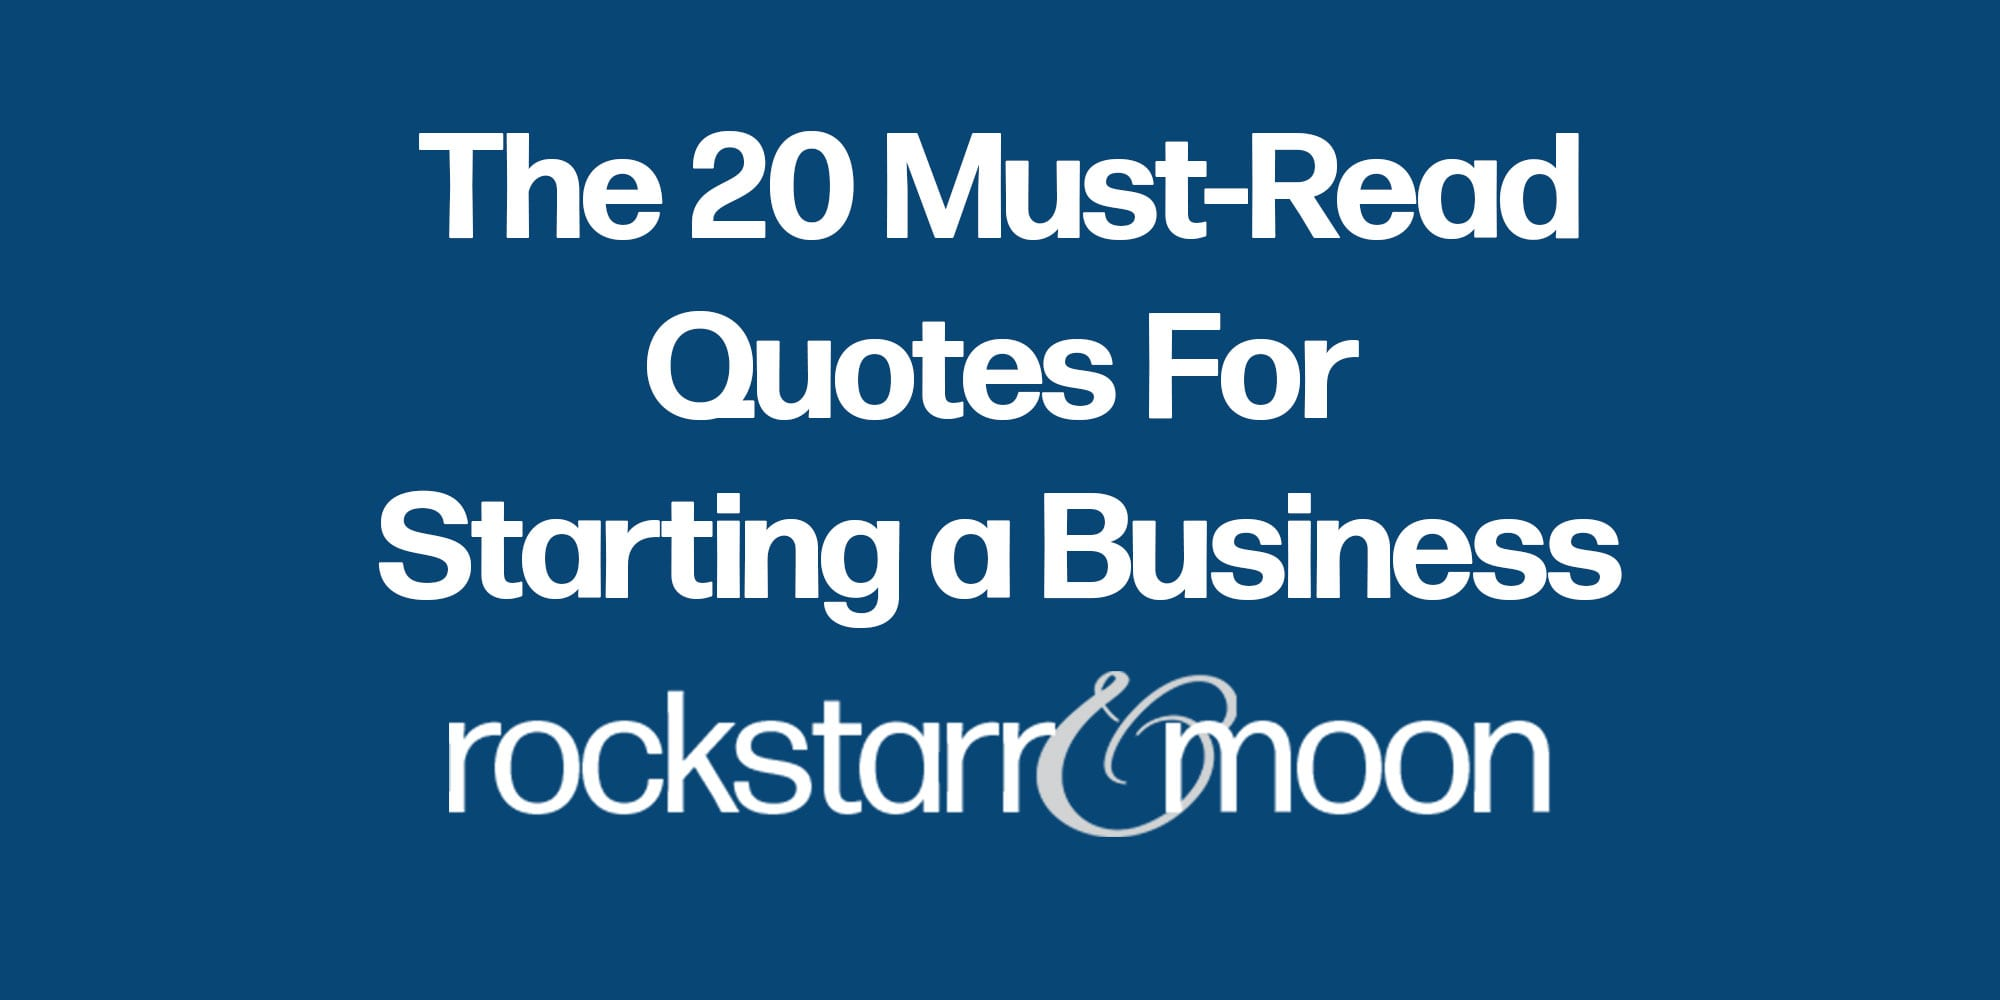 The 20 Must-Read Quotes For Starting a Business